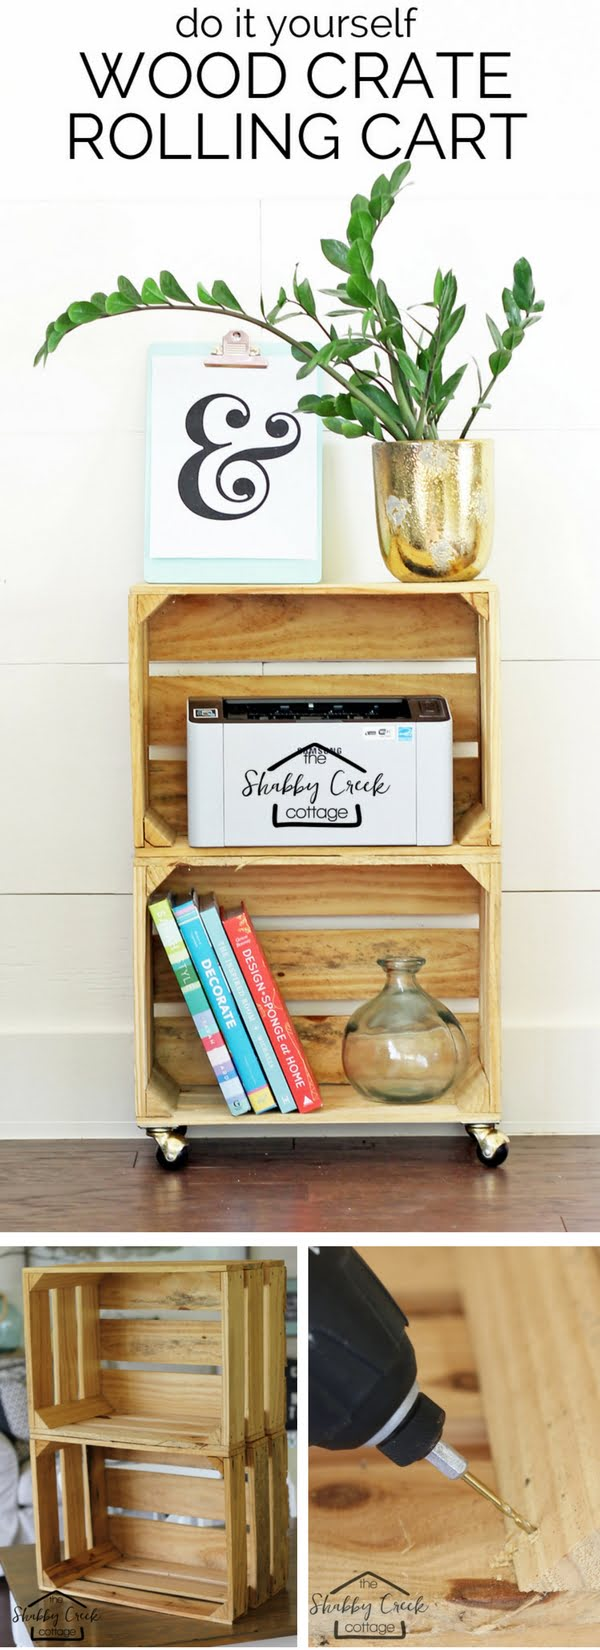 15 Brilliant DIY Crafts You Can Make with Wood Crates - Check out how to build an easy DIY rolling cart from wood crates